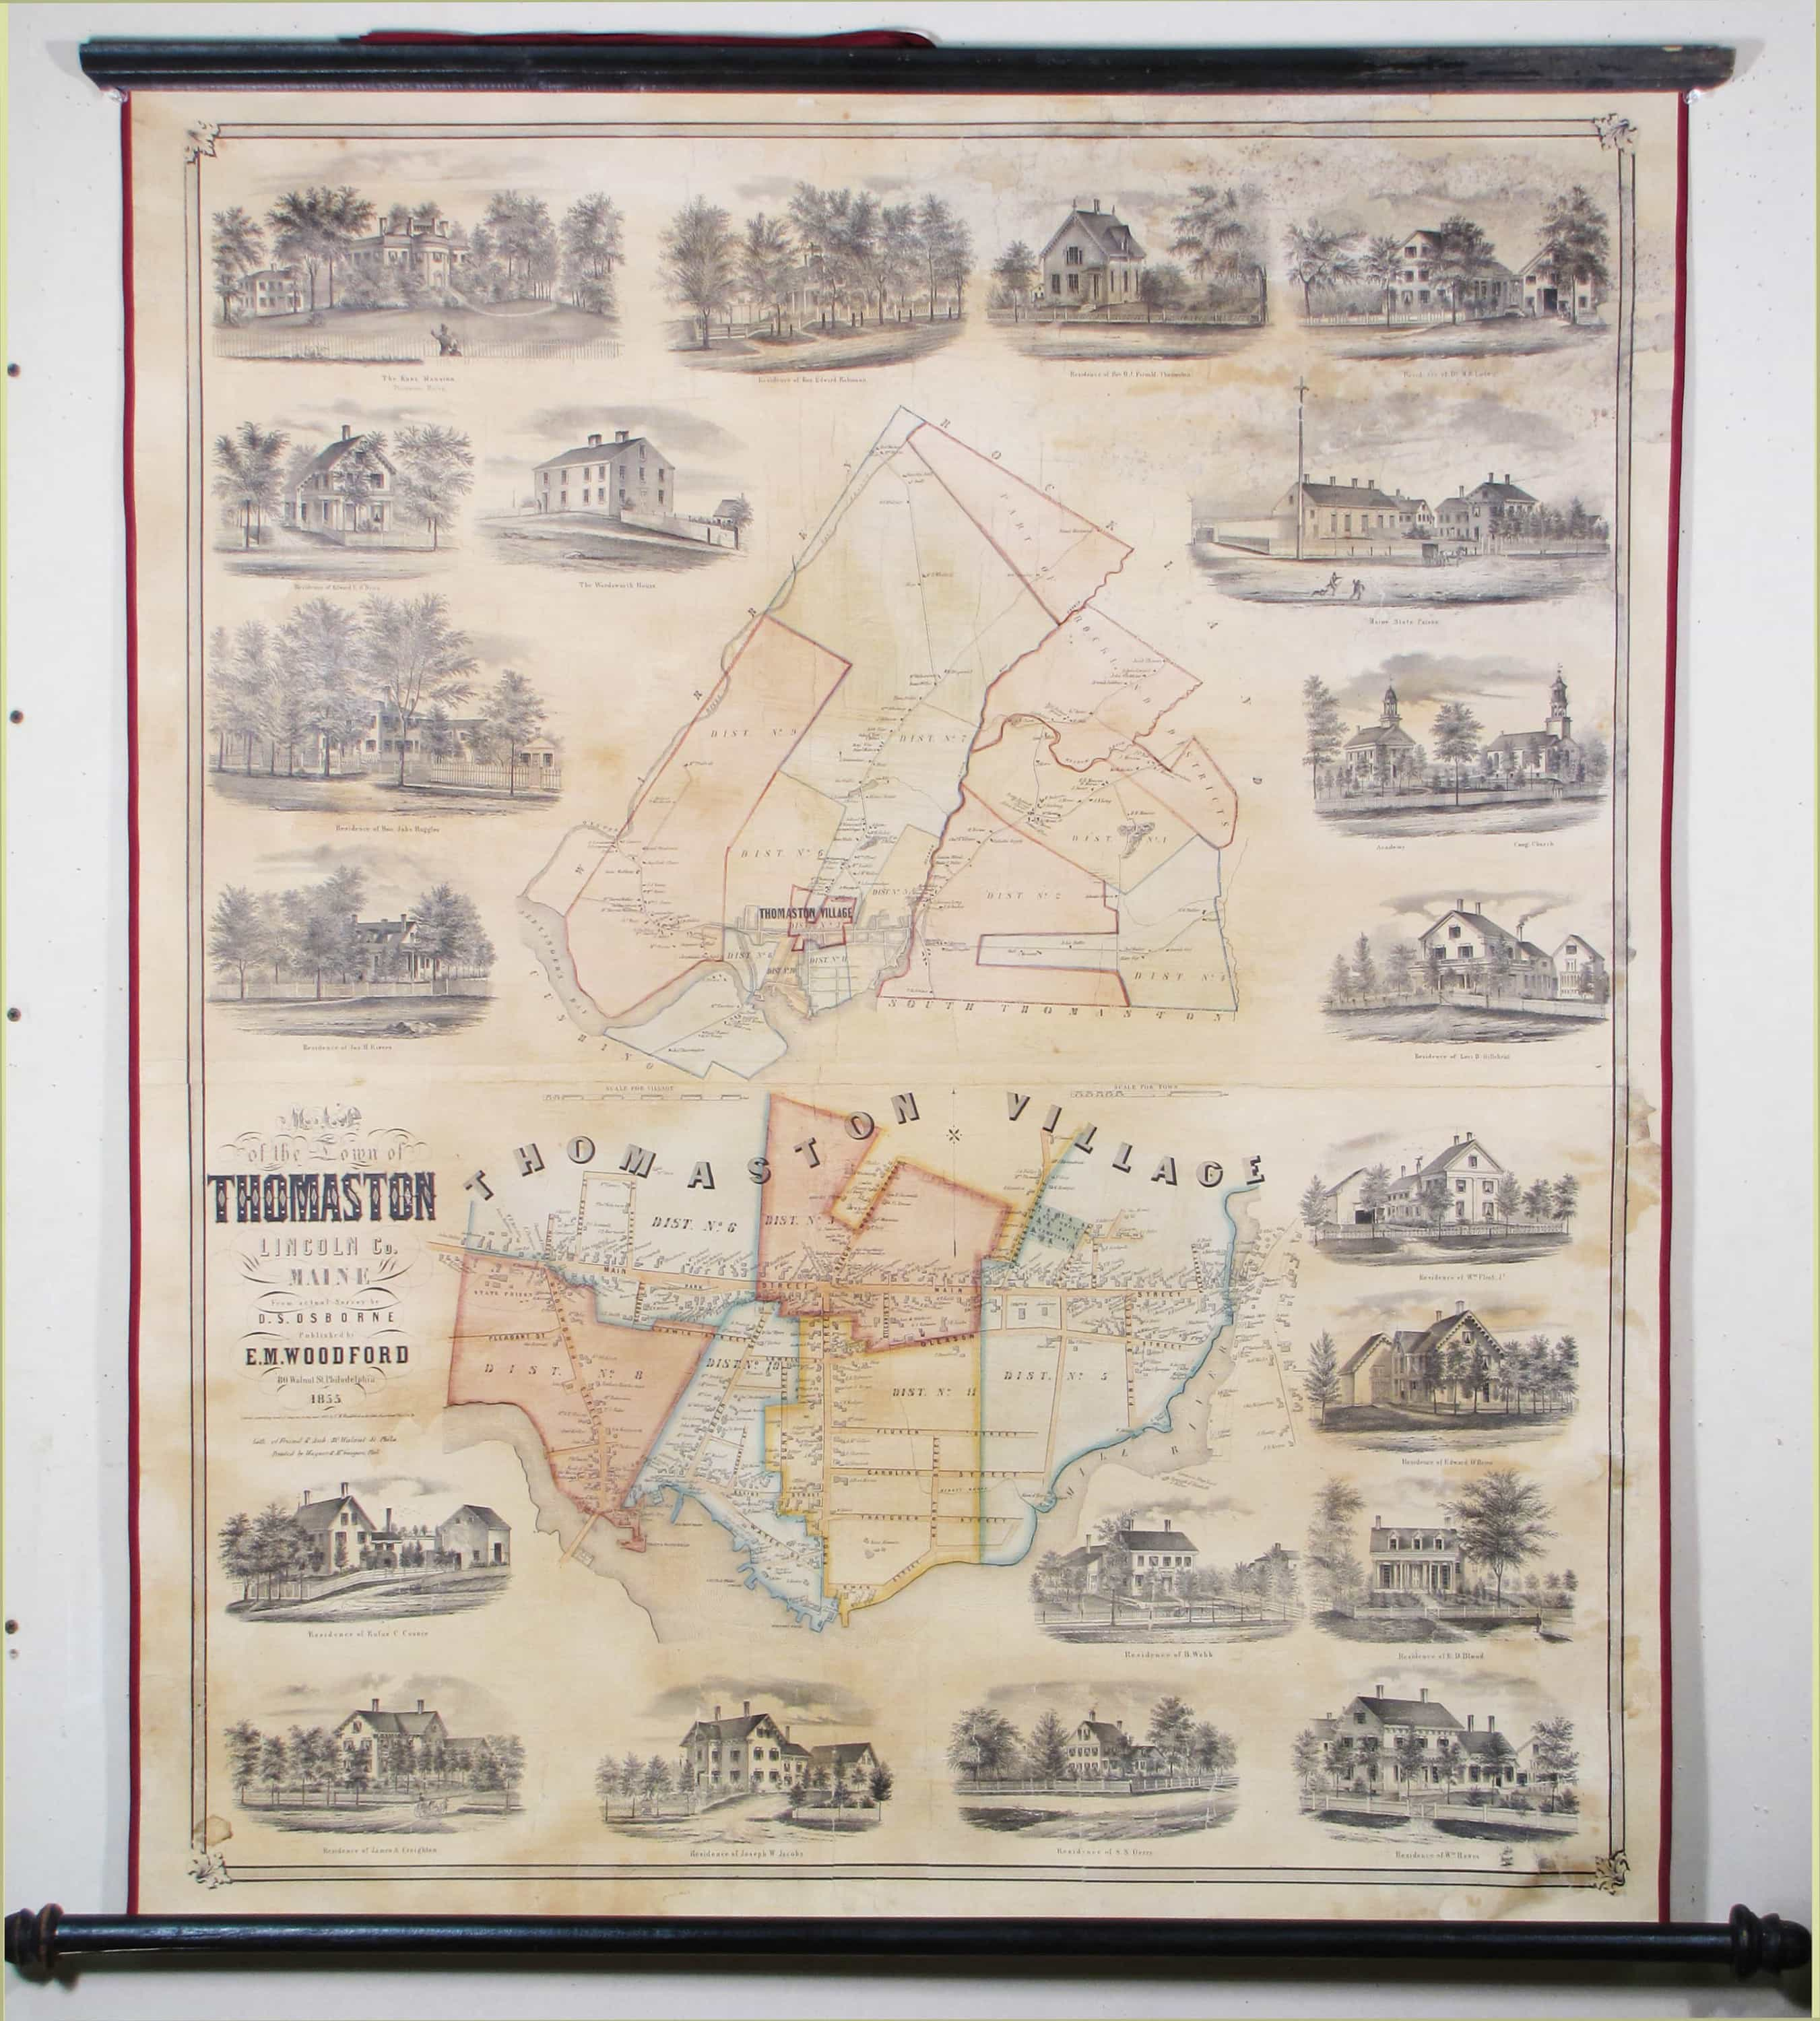 A Rare And Lovely Map Of Thomaston Maine Rare Antique Maps - Antique map of maine